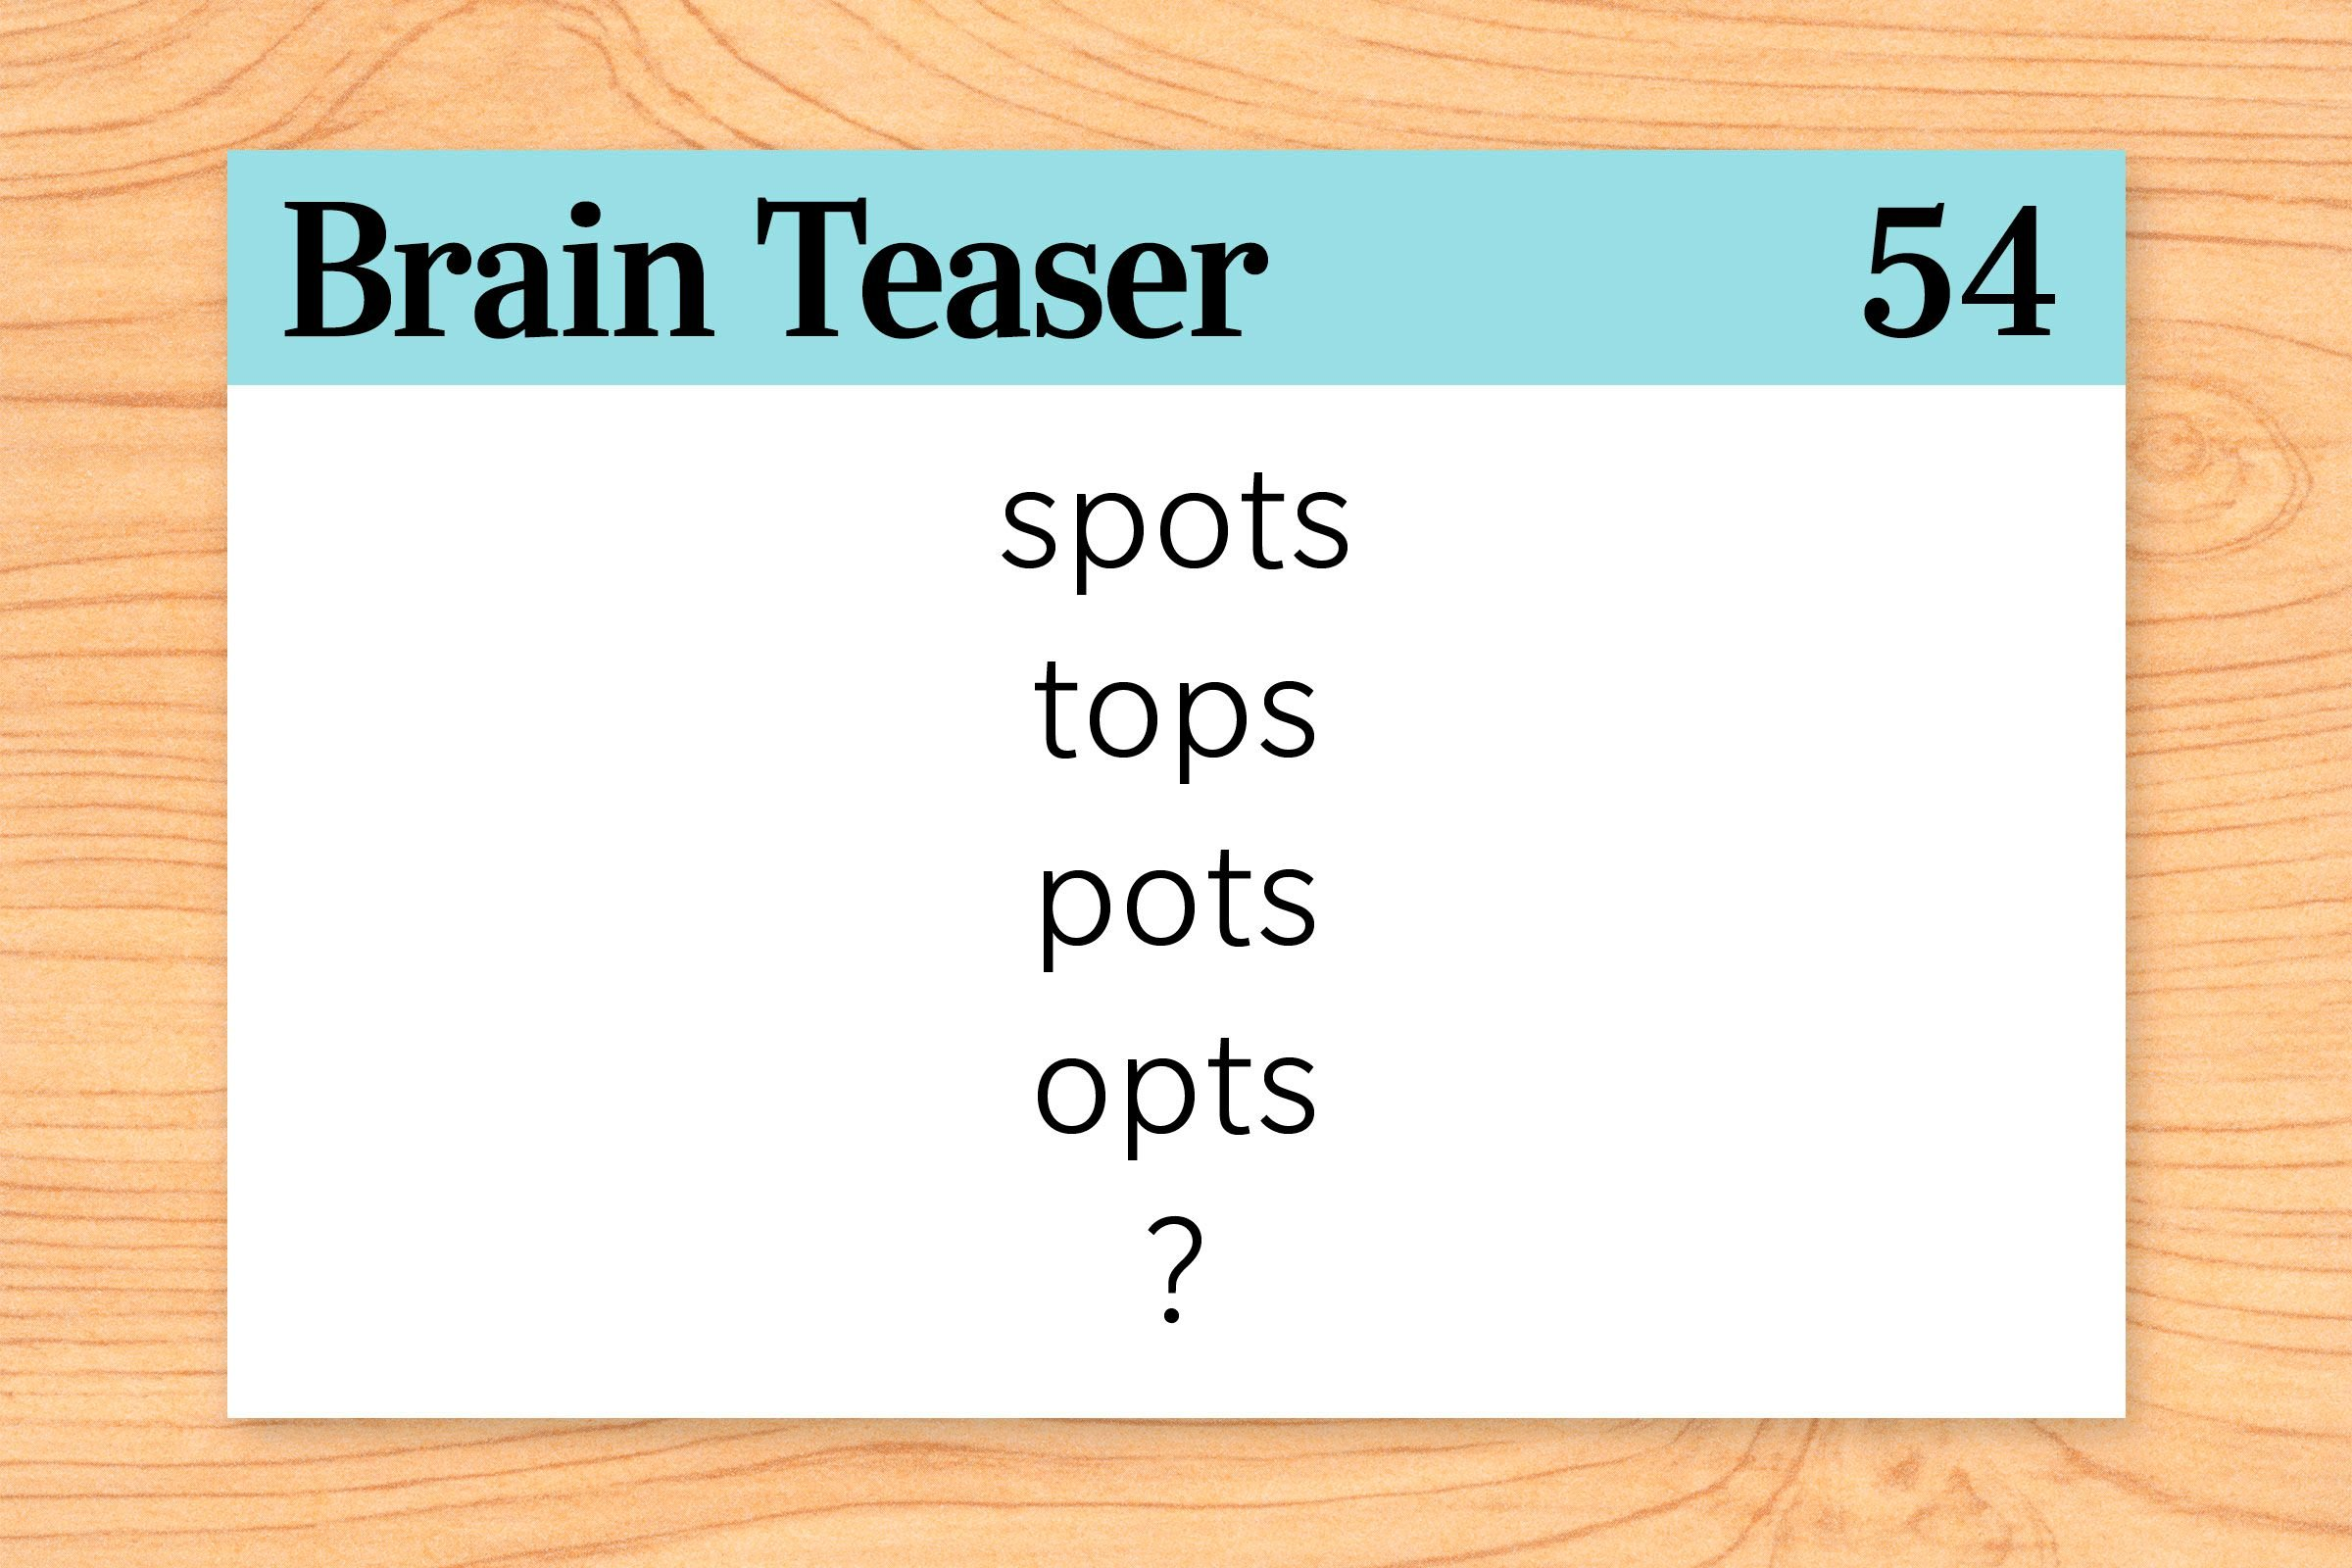 Which word logically comes next in this sequence? Spots, tops, pots, opts…